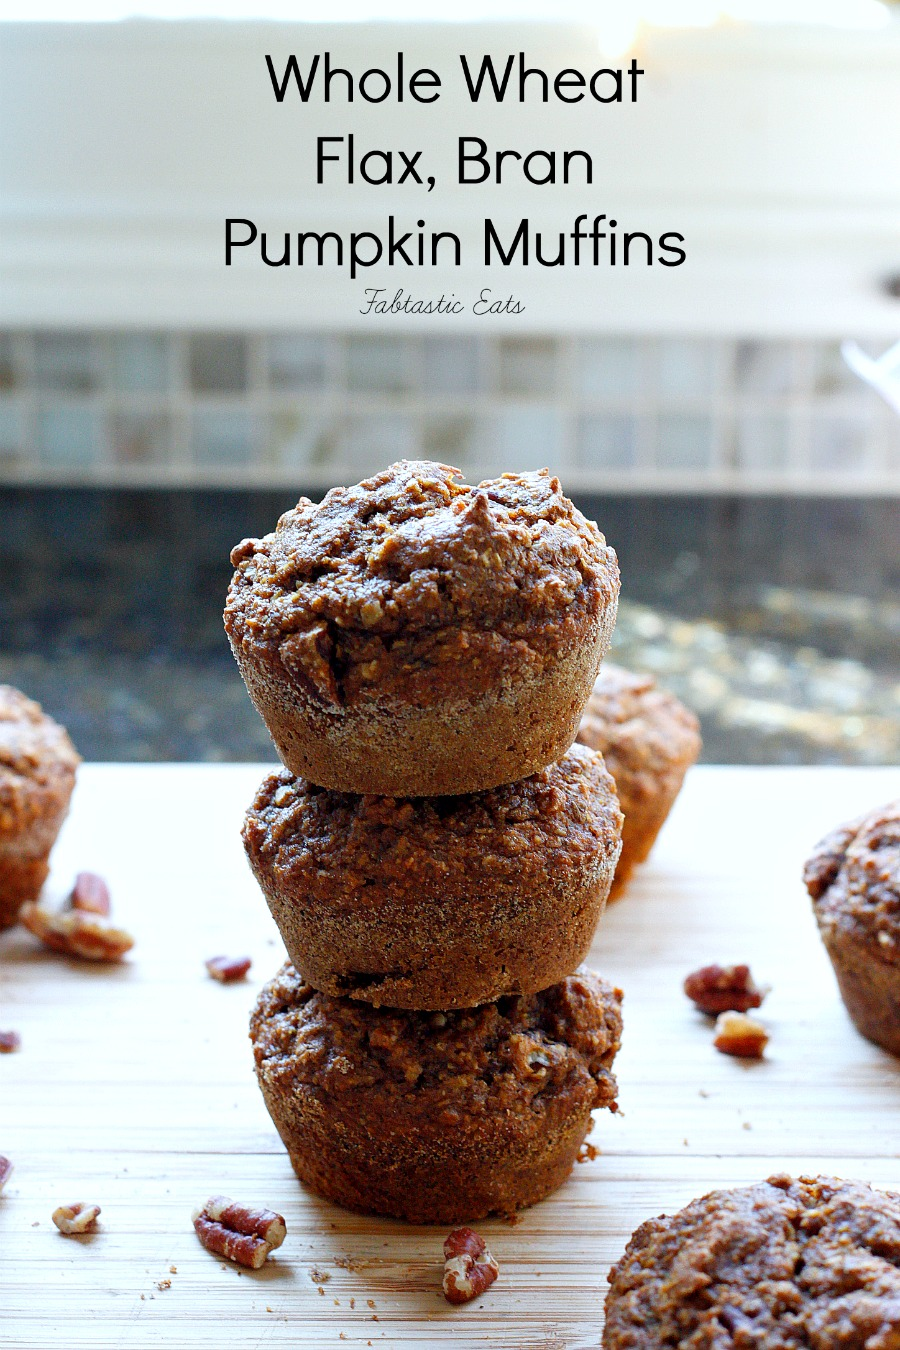 Whole Wheat Flax Bran Pumpkin Muffins | Fabtastic Eats